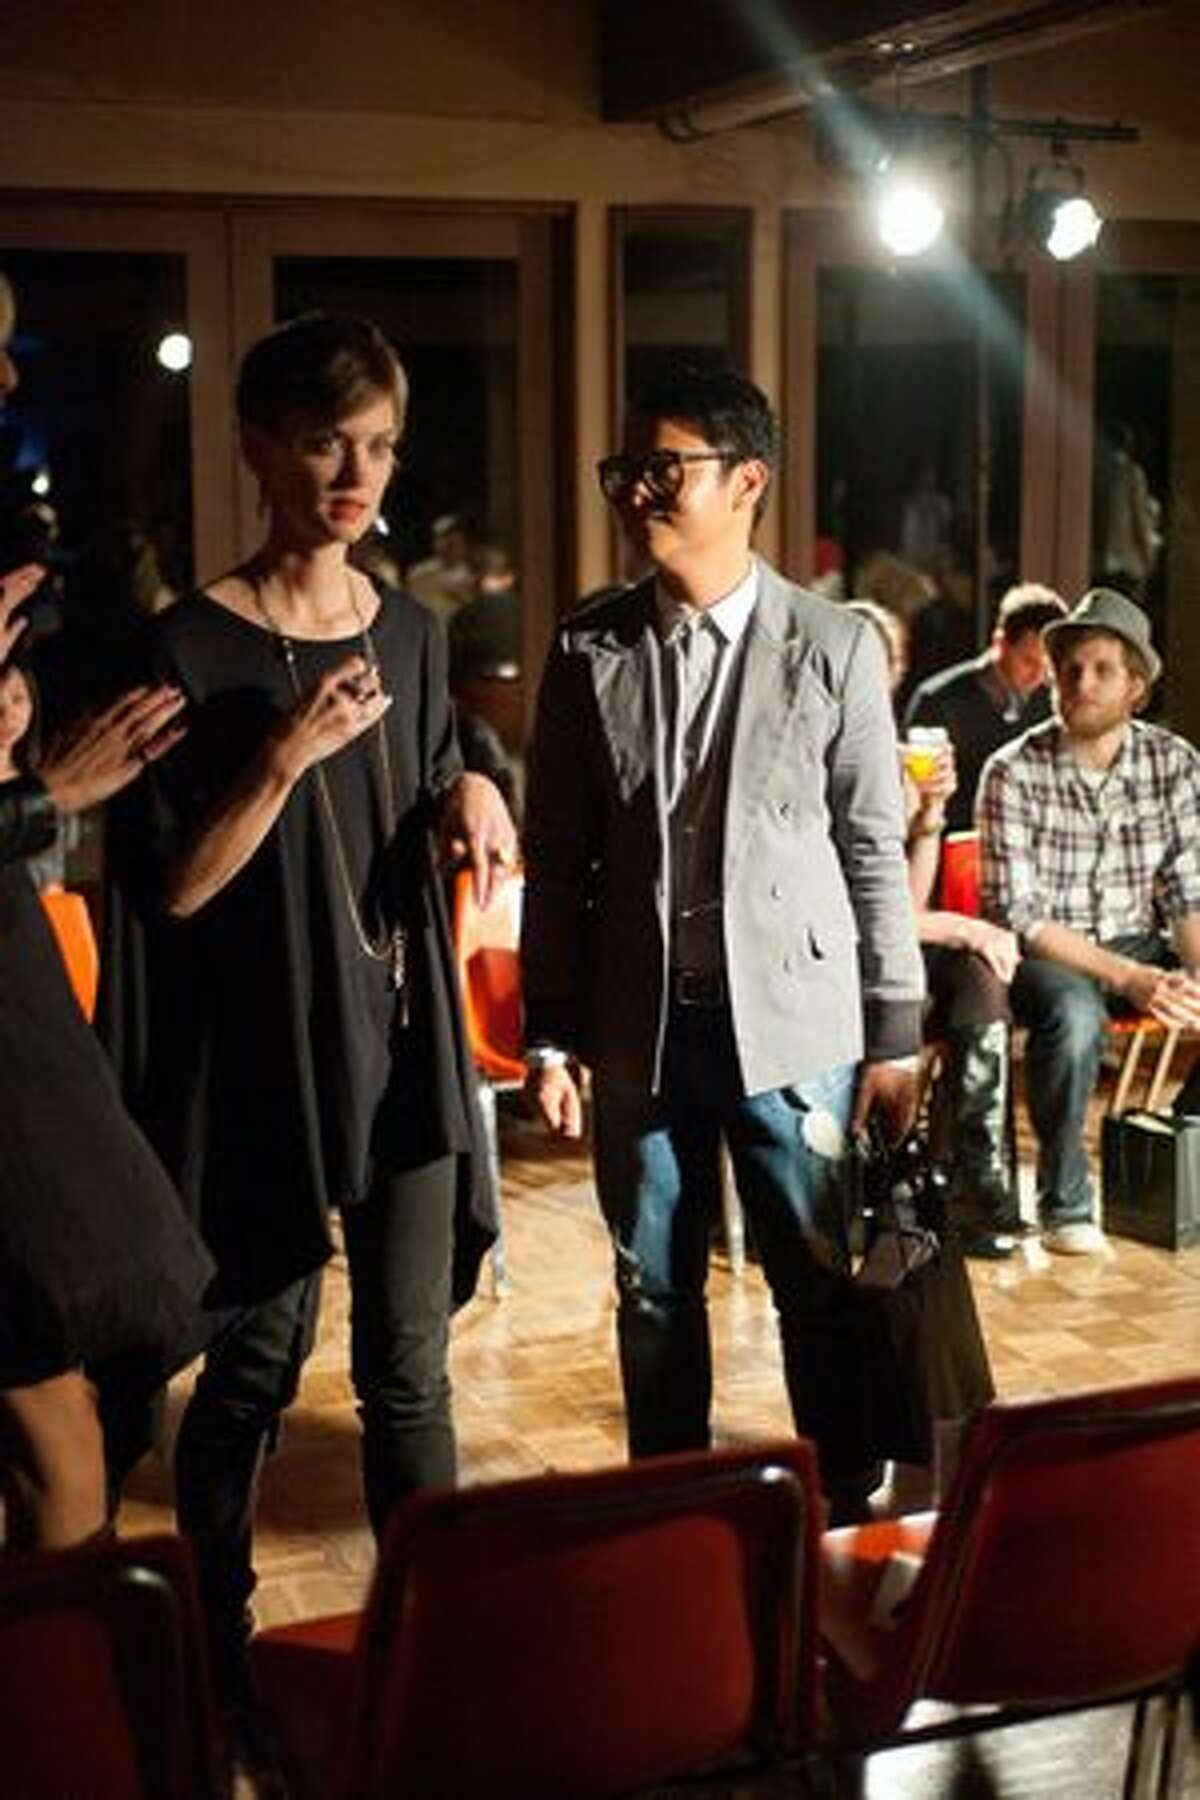 Guests at Blackbird's Autumn/Winter Runway Presentation talk and laugh as they wait for the show to begin.